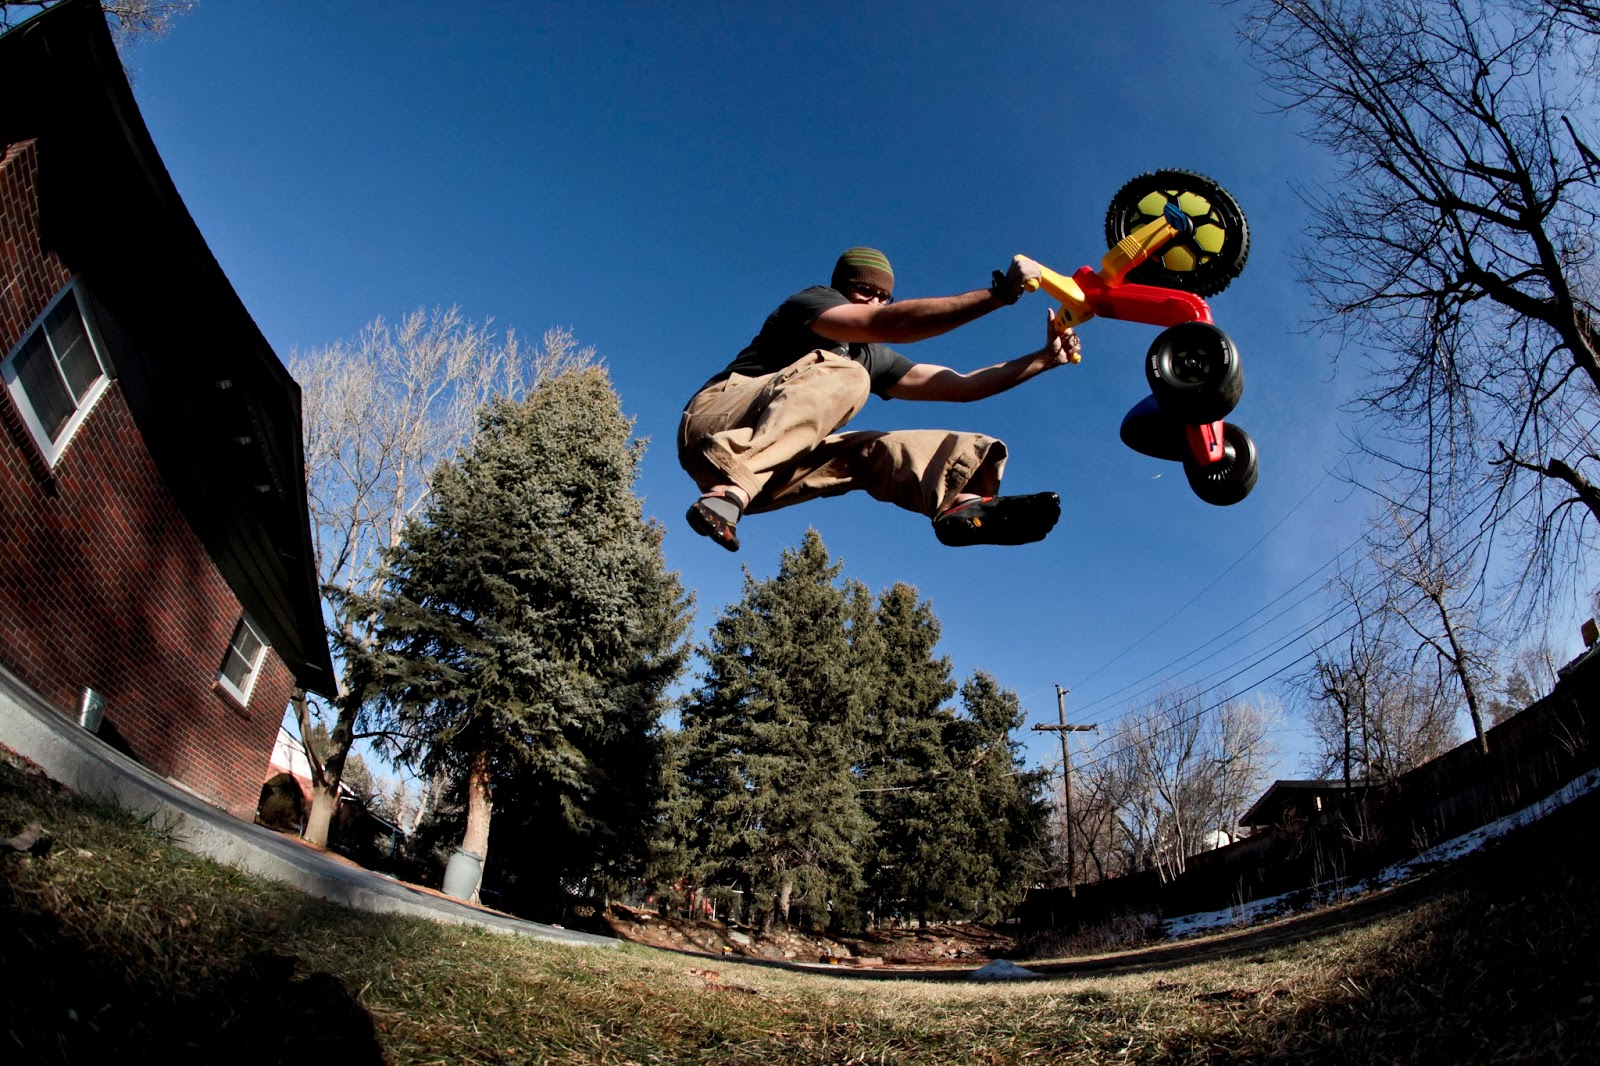 A dad making a big jump on his sons' Big Wheel in the backyard.